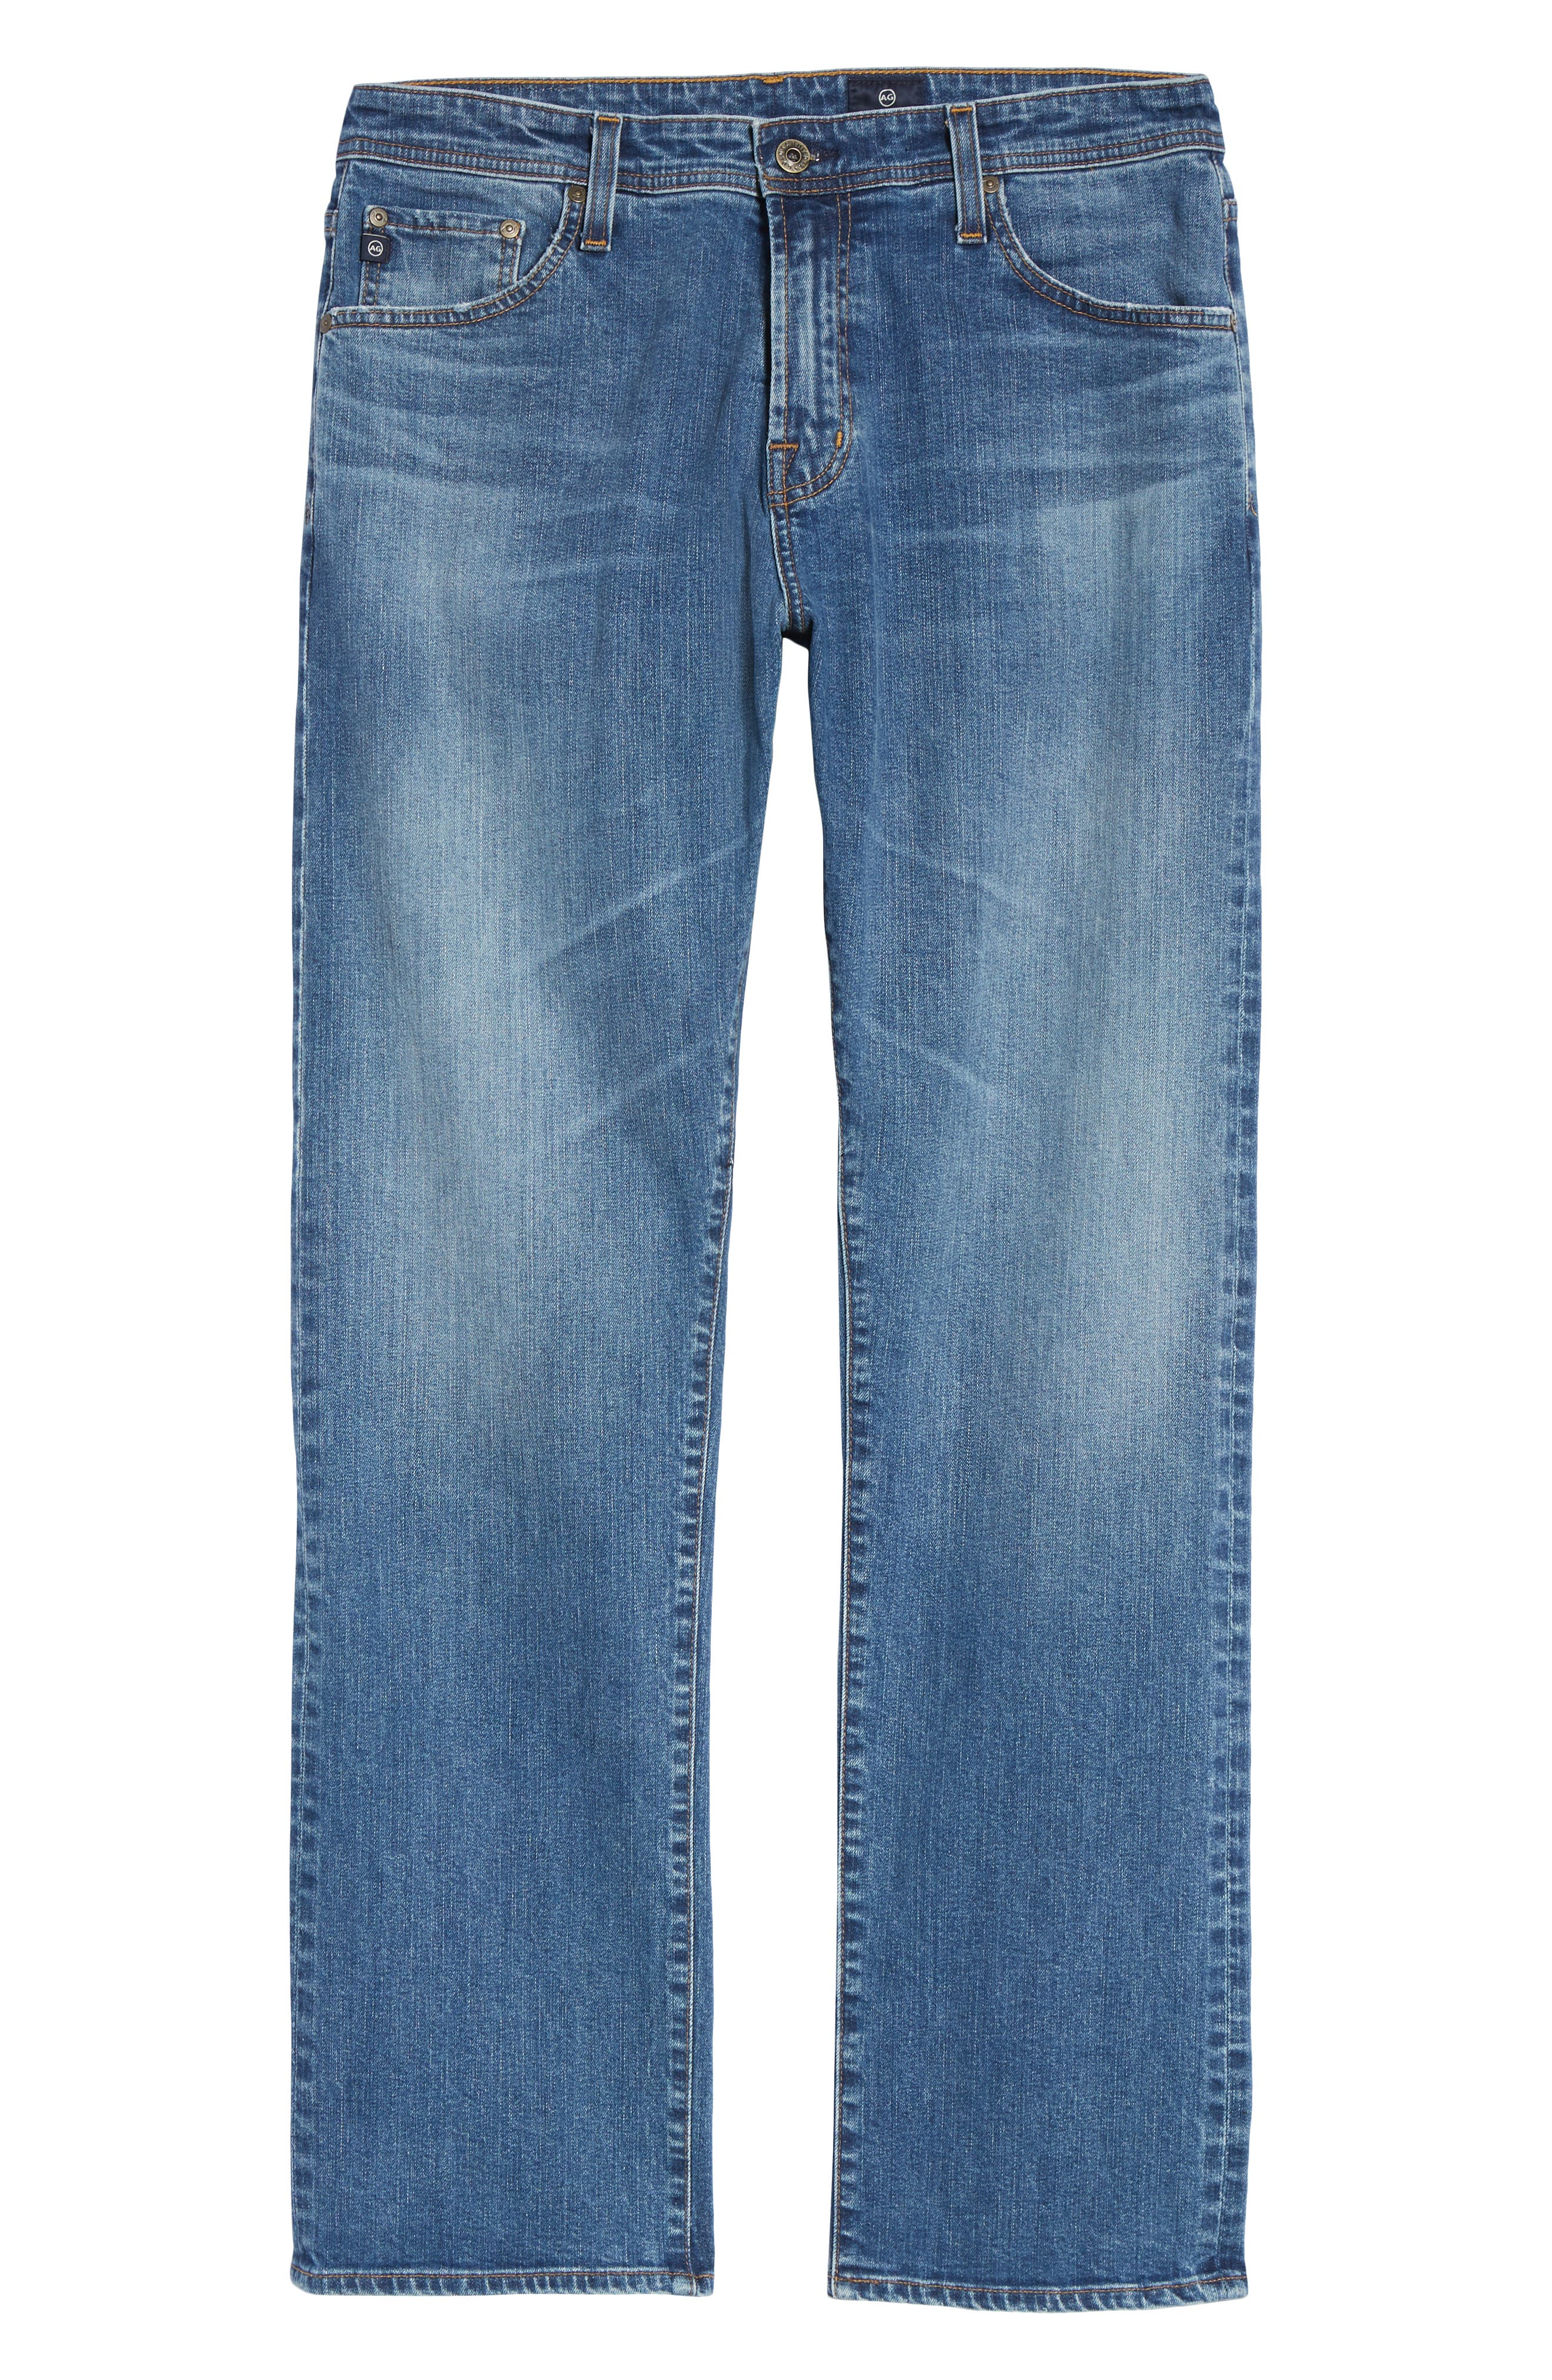 Ives Straight Leg Jeans,                             Alternate thumbnail 6, color,                             485